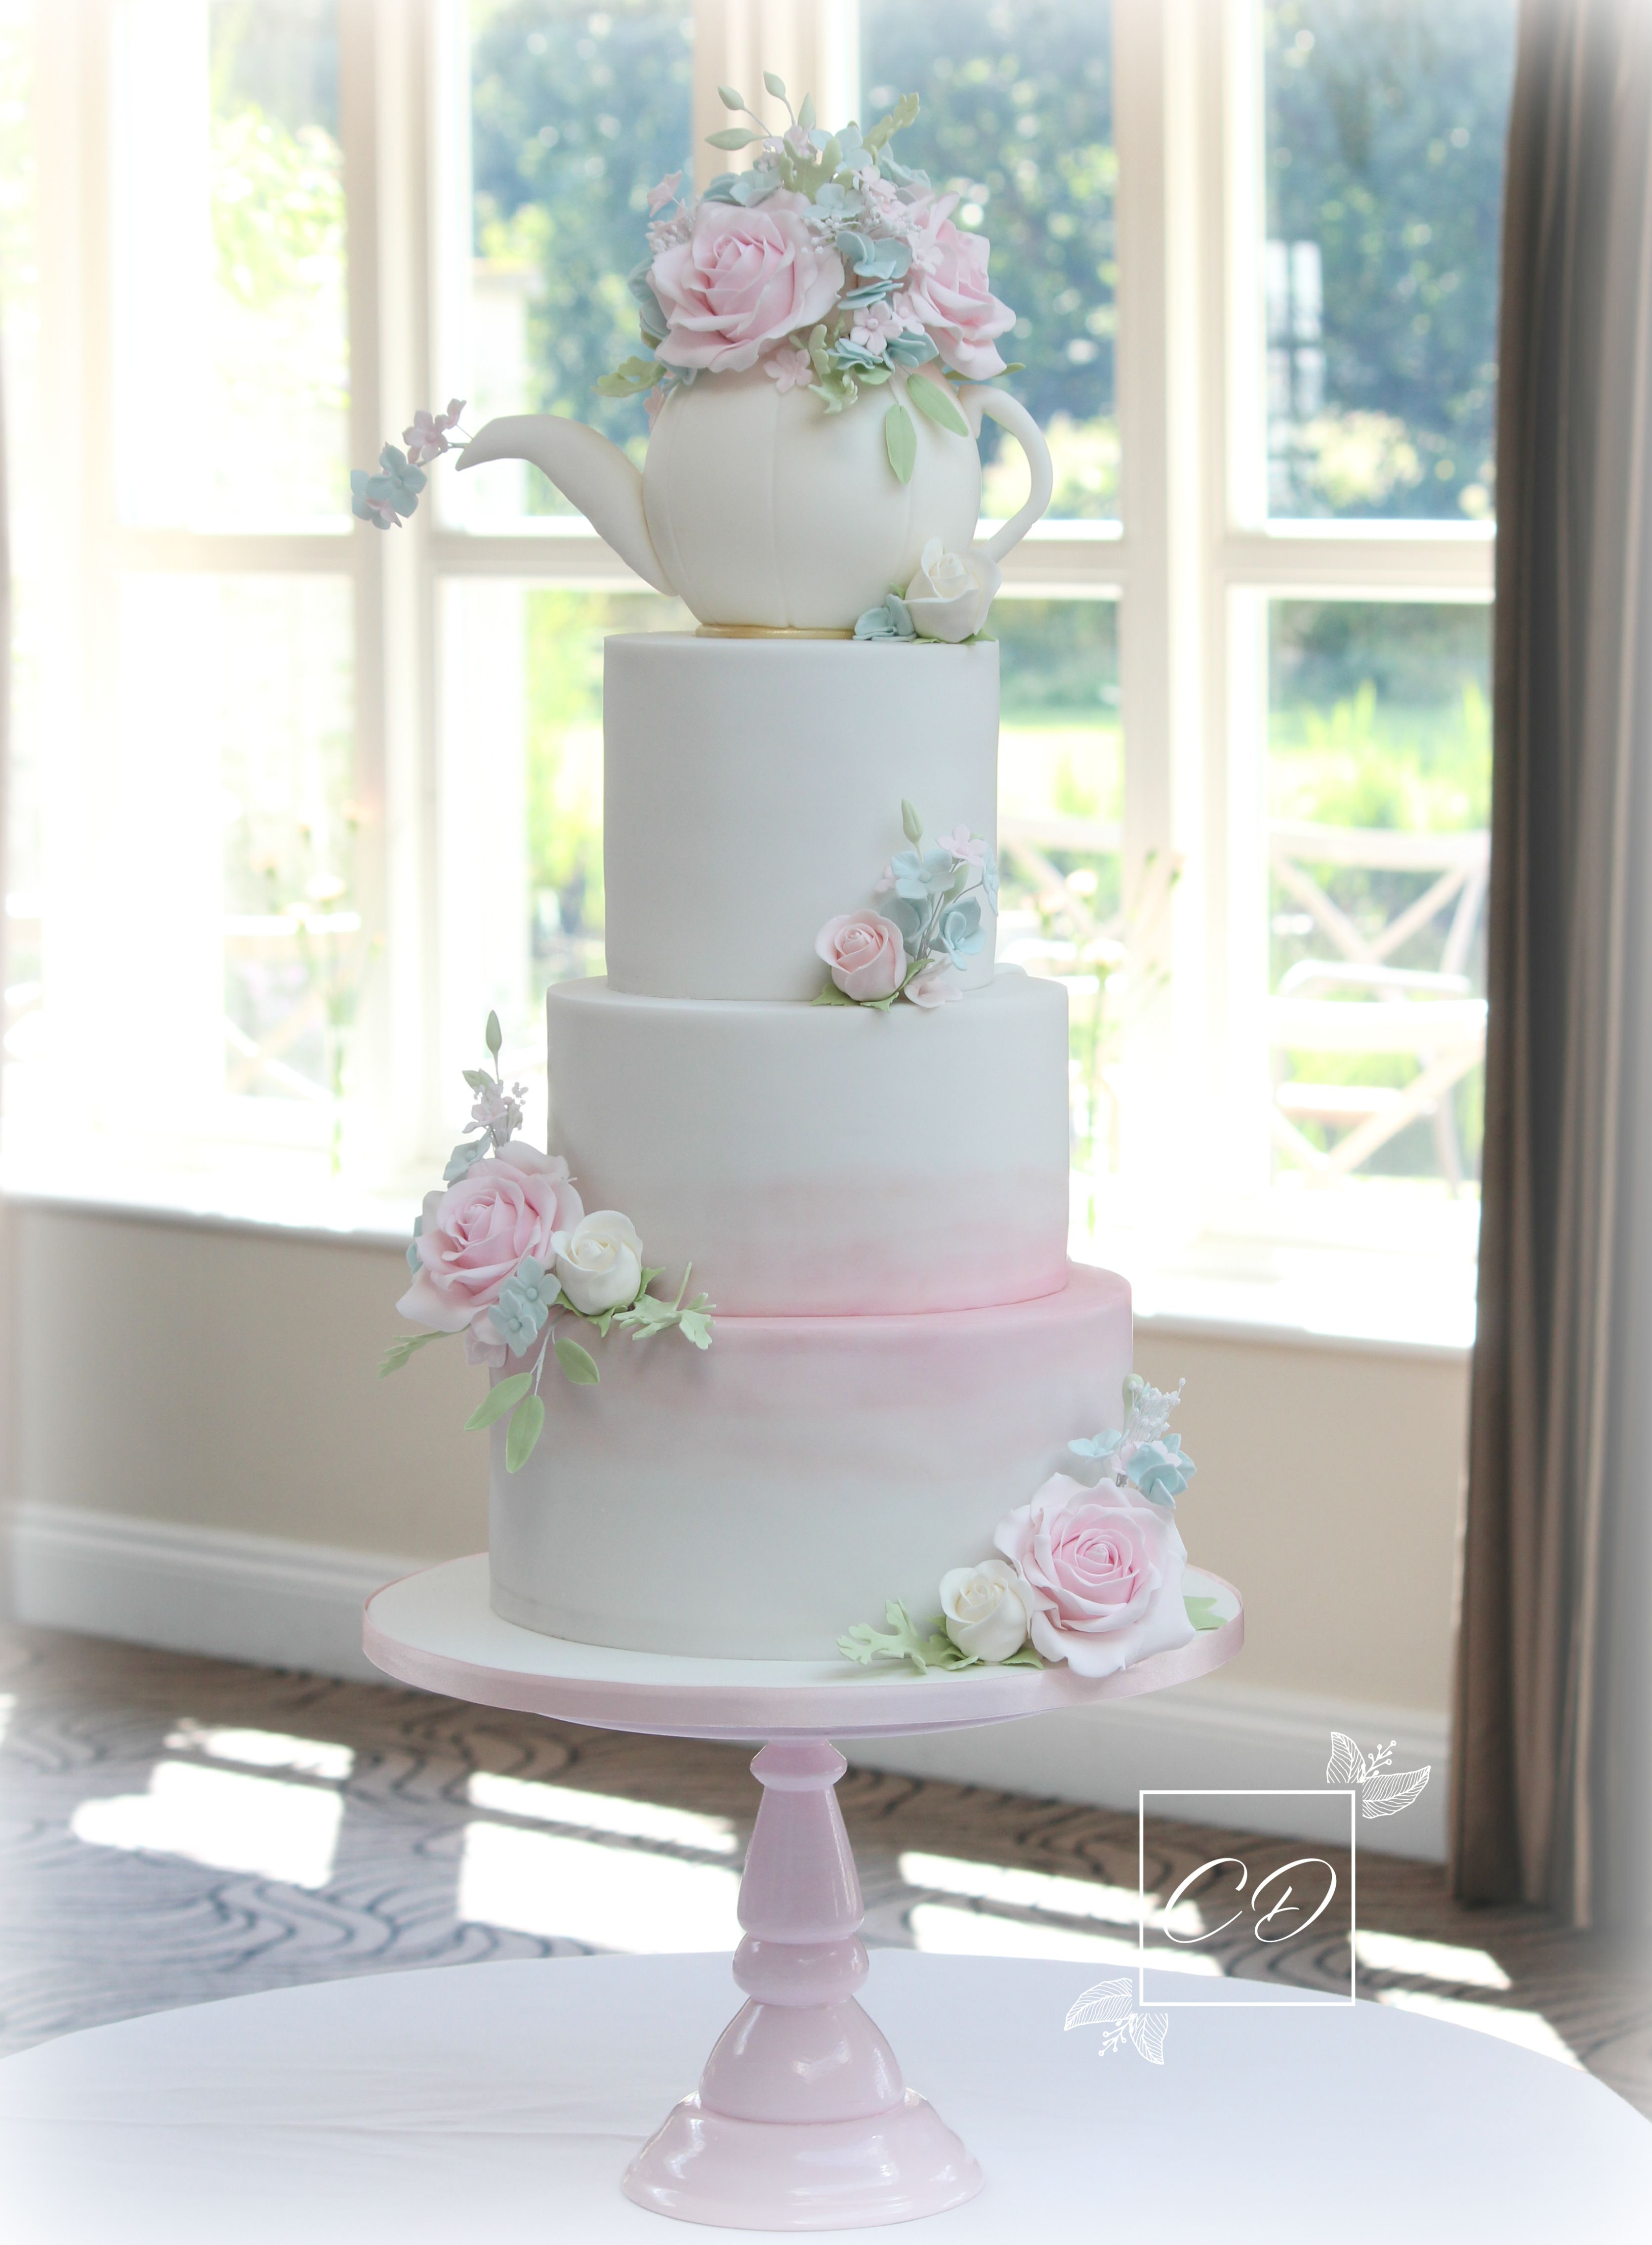 Three Tier Wedding Cake With Teapot Topper And Pastel Sugar Flowers By Www Cookiedelicious Co Uk Weddingcake Threetier